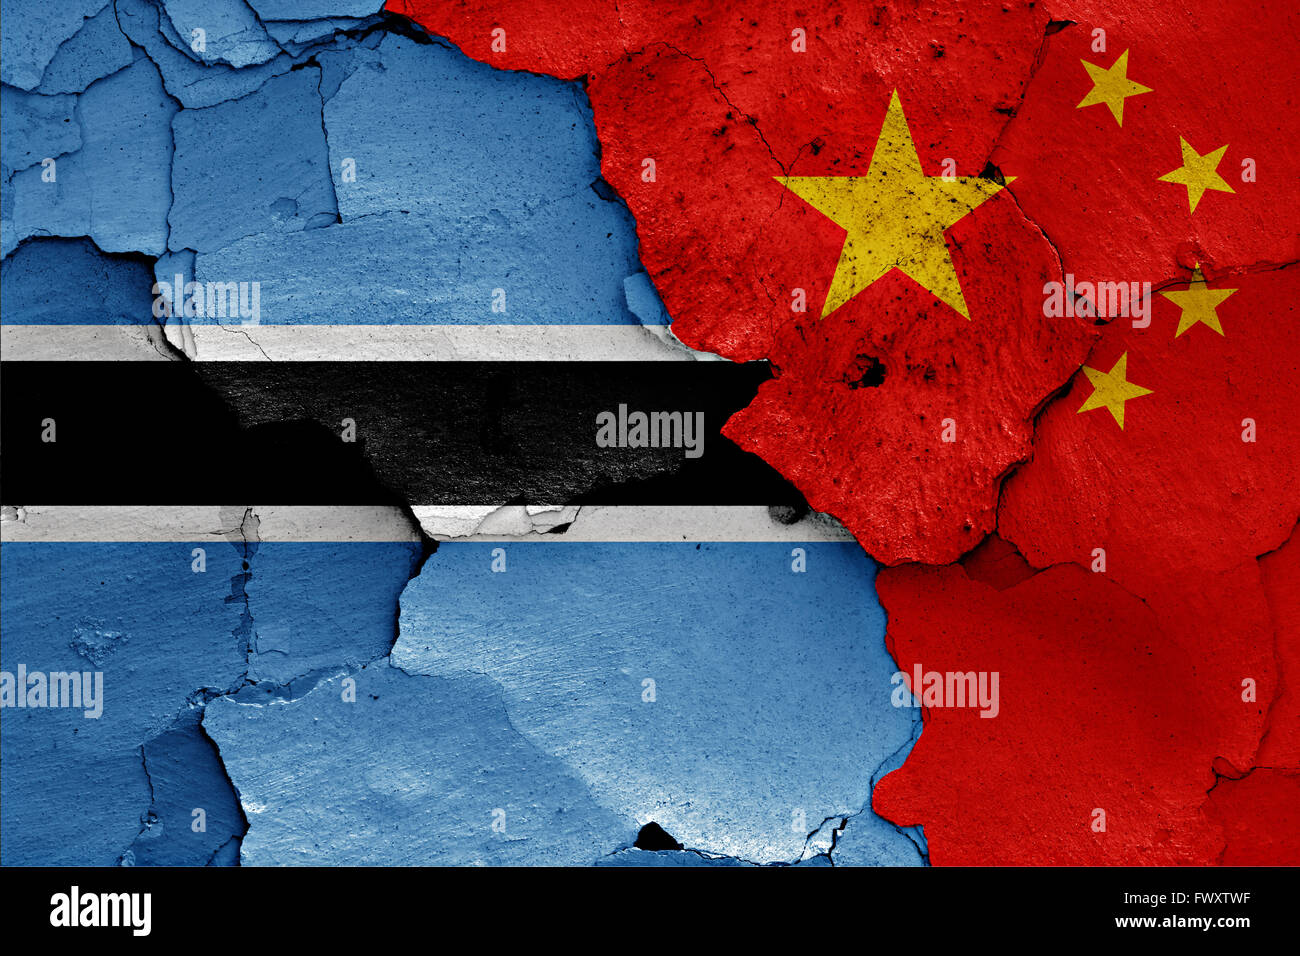 flags of Botswana and China painted on cracked wall - Stock Image